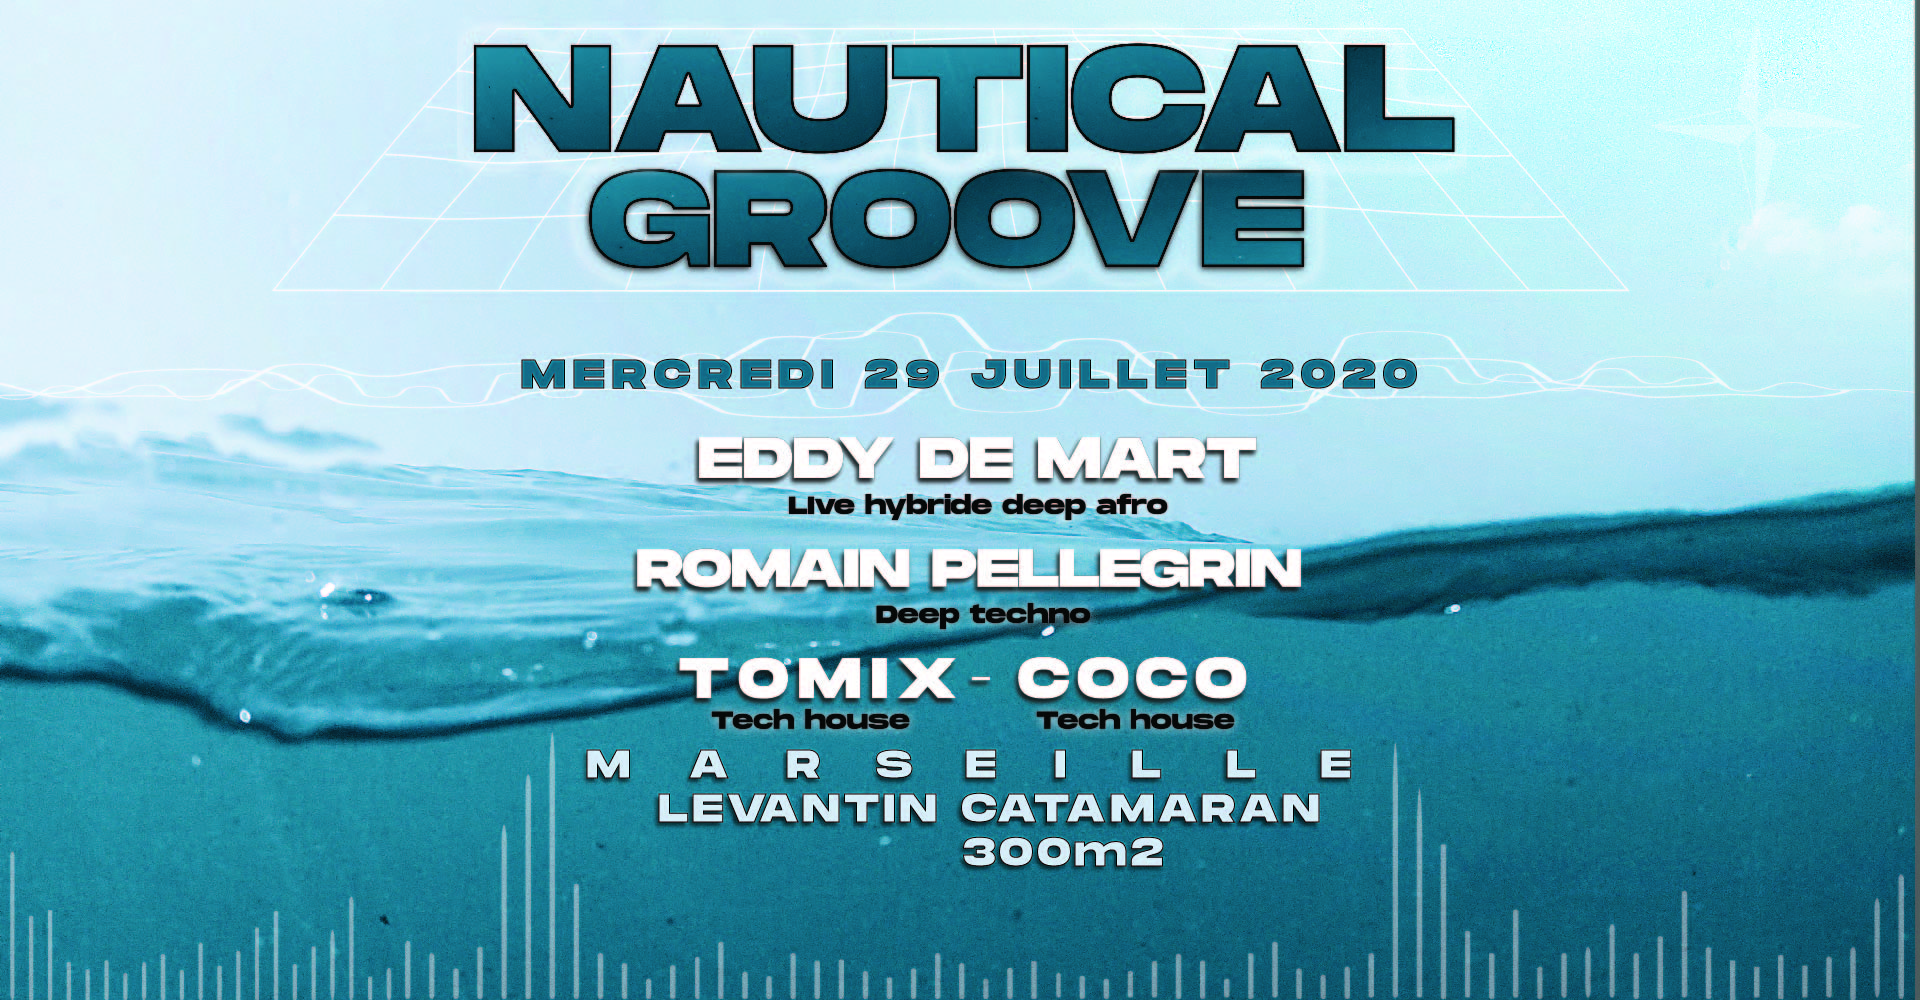 Nautical groove #1 [BOAT PARTY] By Eargasm